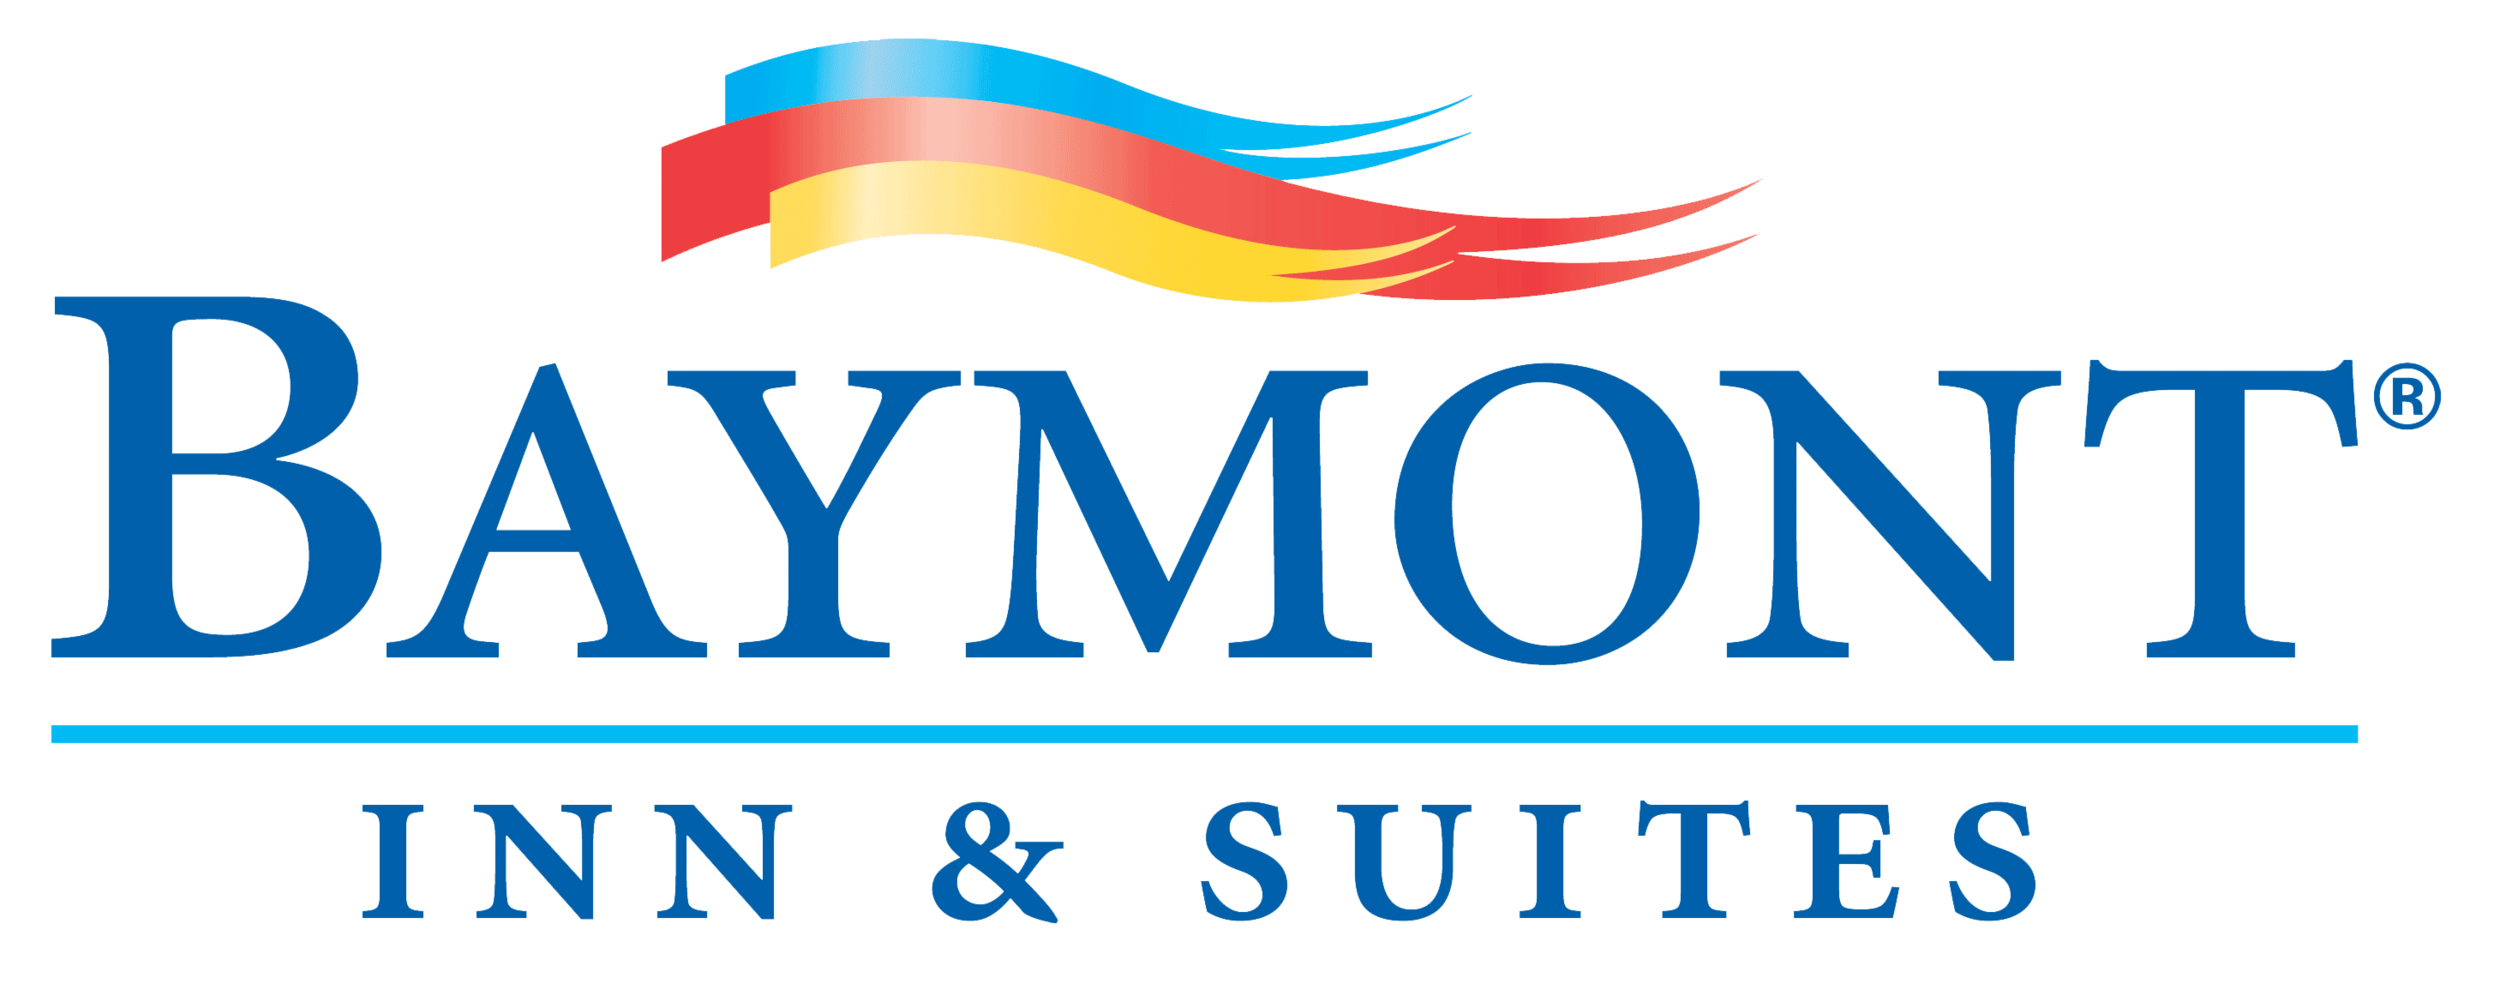 BAYMONT INN & SUITES - KISSIMMEE, FLORIDA -